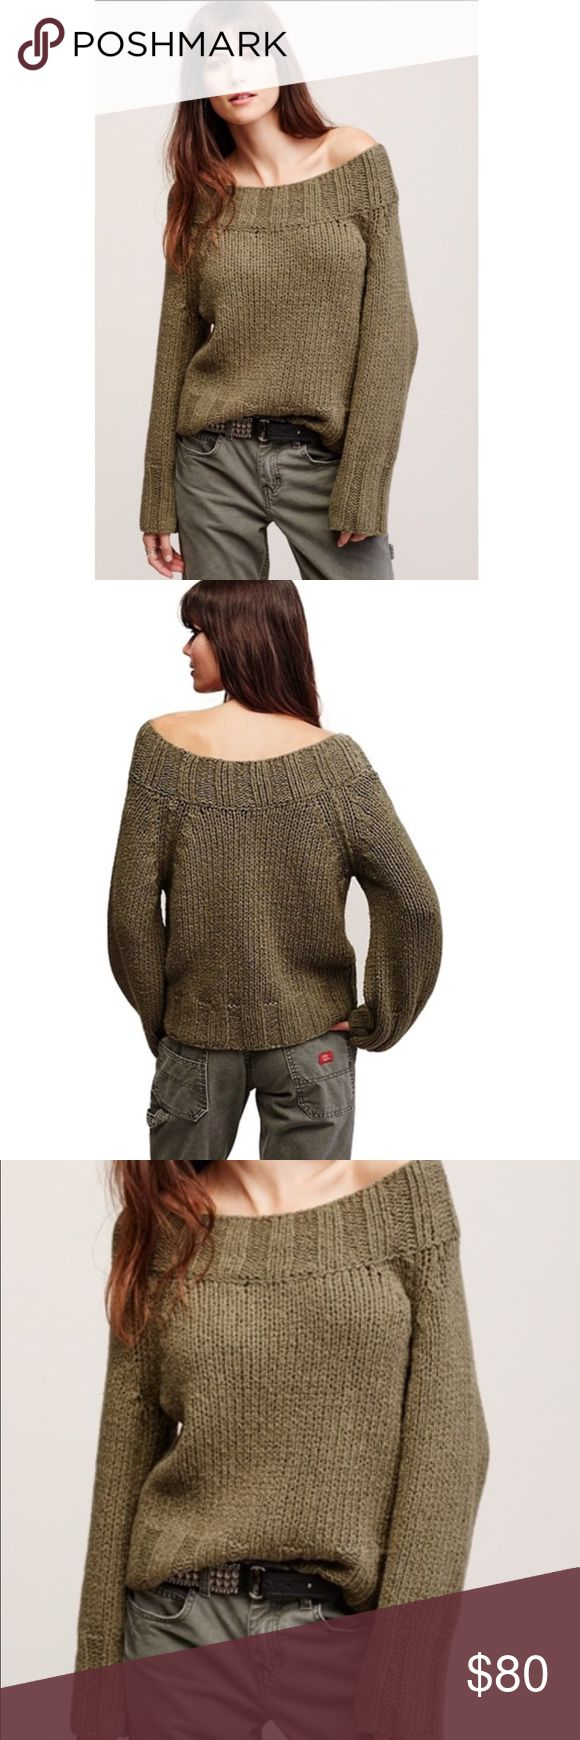 FREE PEOPLE SLOUGY KNIT SWEATER SALE💗💗 GREAT KNIT will fit a Small as well as XS. Thicker KNIT. Wear off one Shoulder or both. Banded Bottom and Top. Beauty!! Very well made!! *️⃣PRICE is FIRM unless Bundled. NO OFFERS PLEASE . COLOR is Olive. Free People Sweaters Crew & Scoop Necks